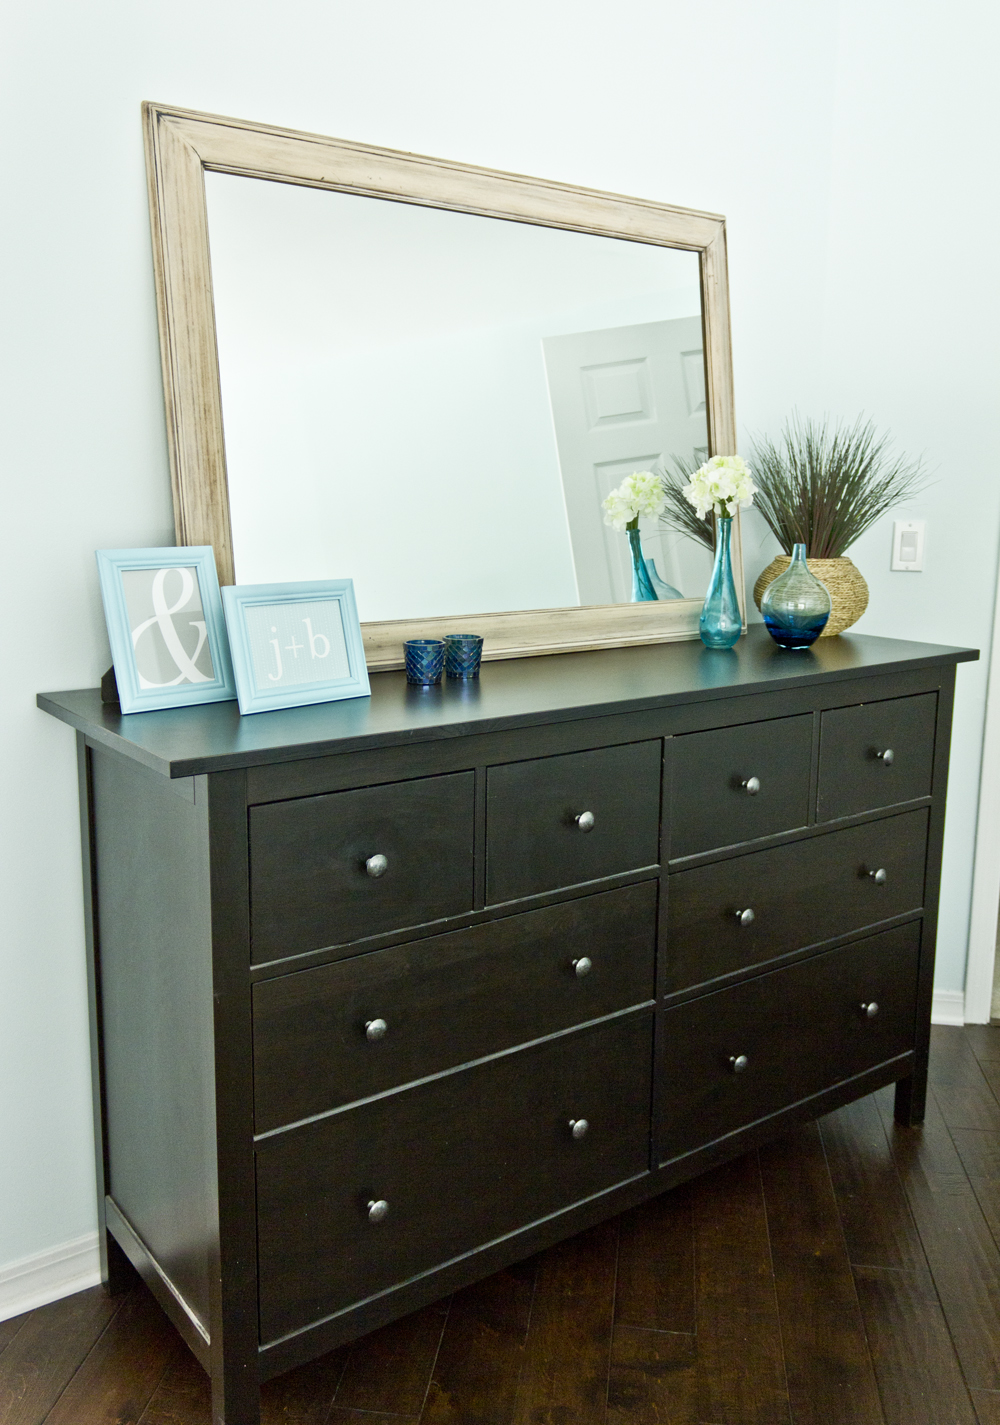 Hemnes ikea wardrobe review for Ikea comodino hemnes